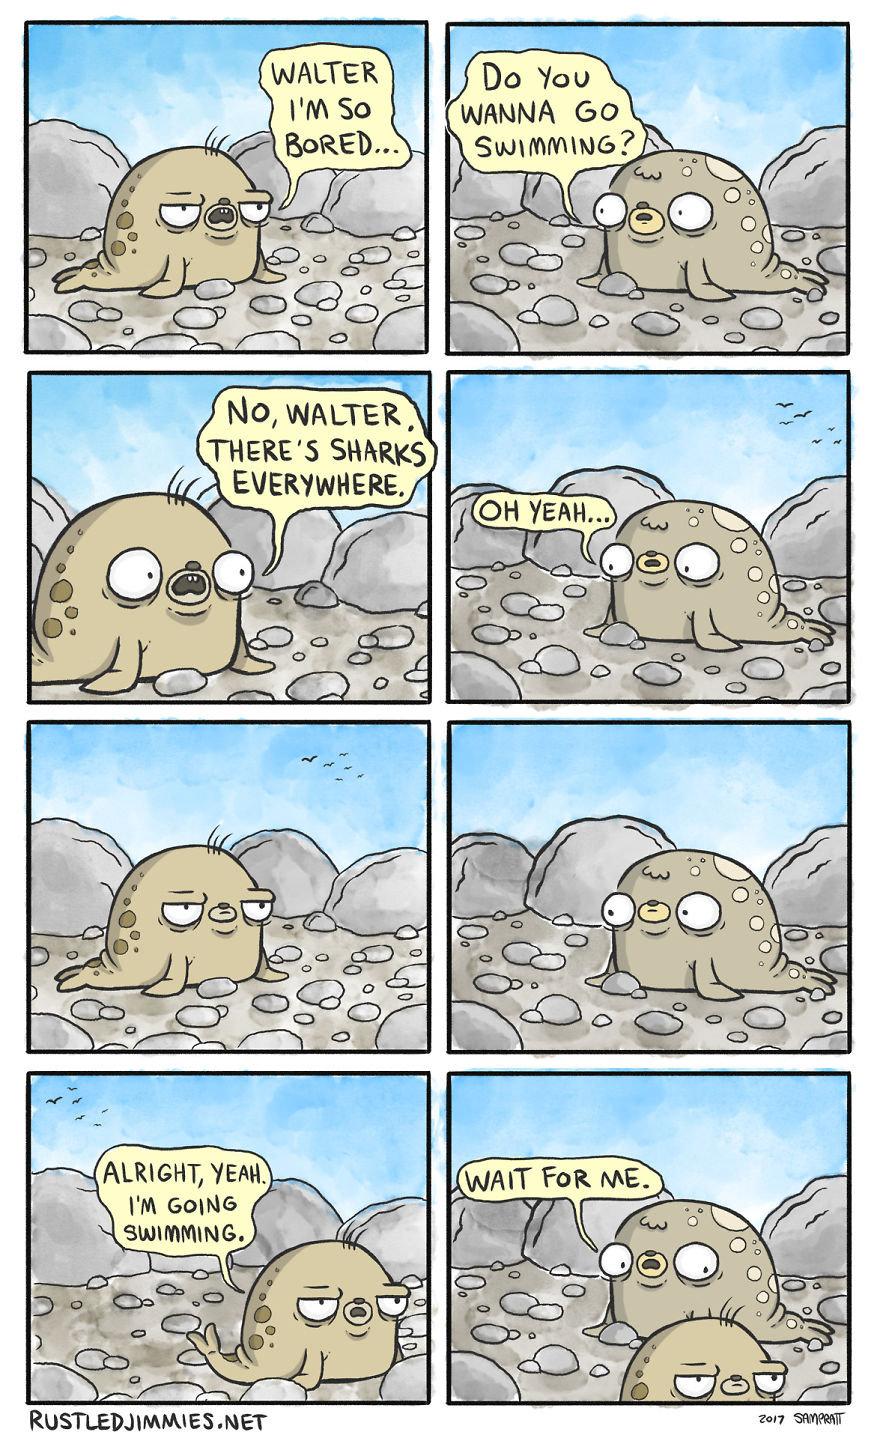 I Am The Cartoonist Behind The Webcomic Rustled Jimmies